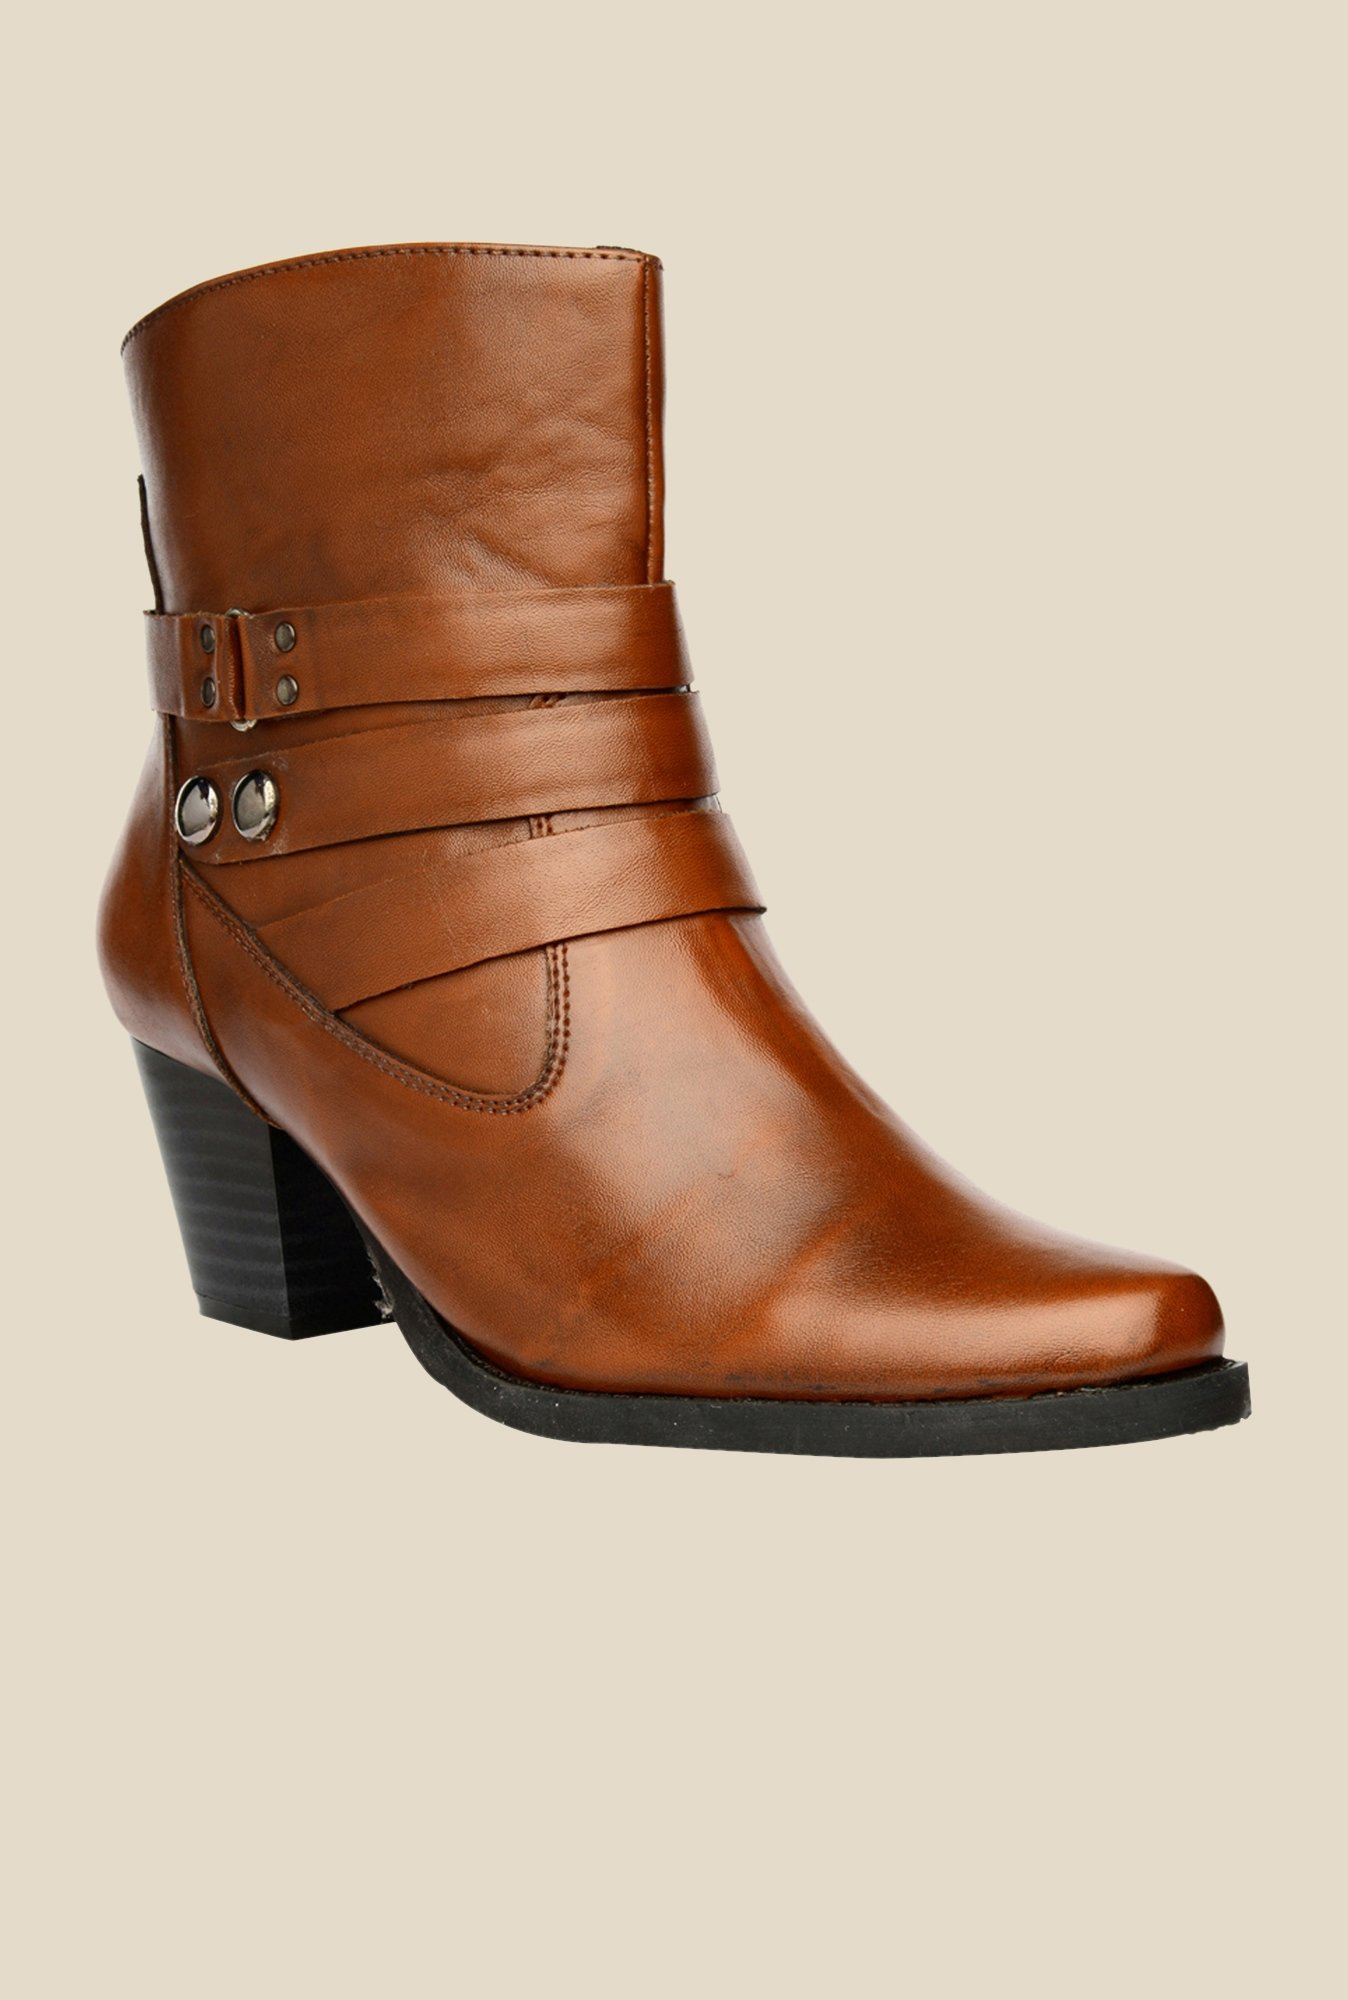 Bruno Manetti Tan Block Heeled Booties